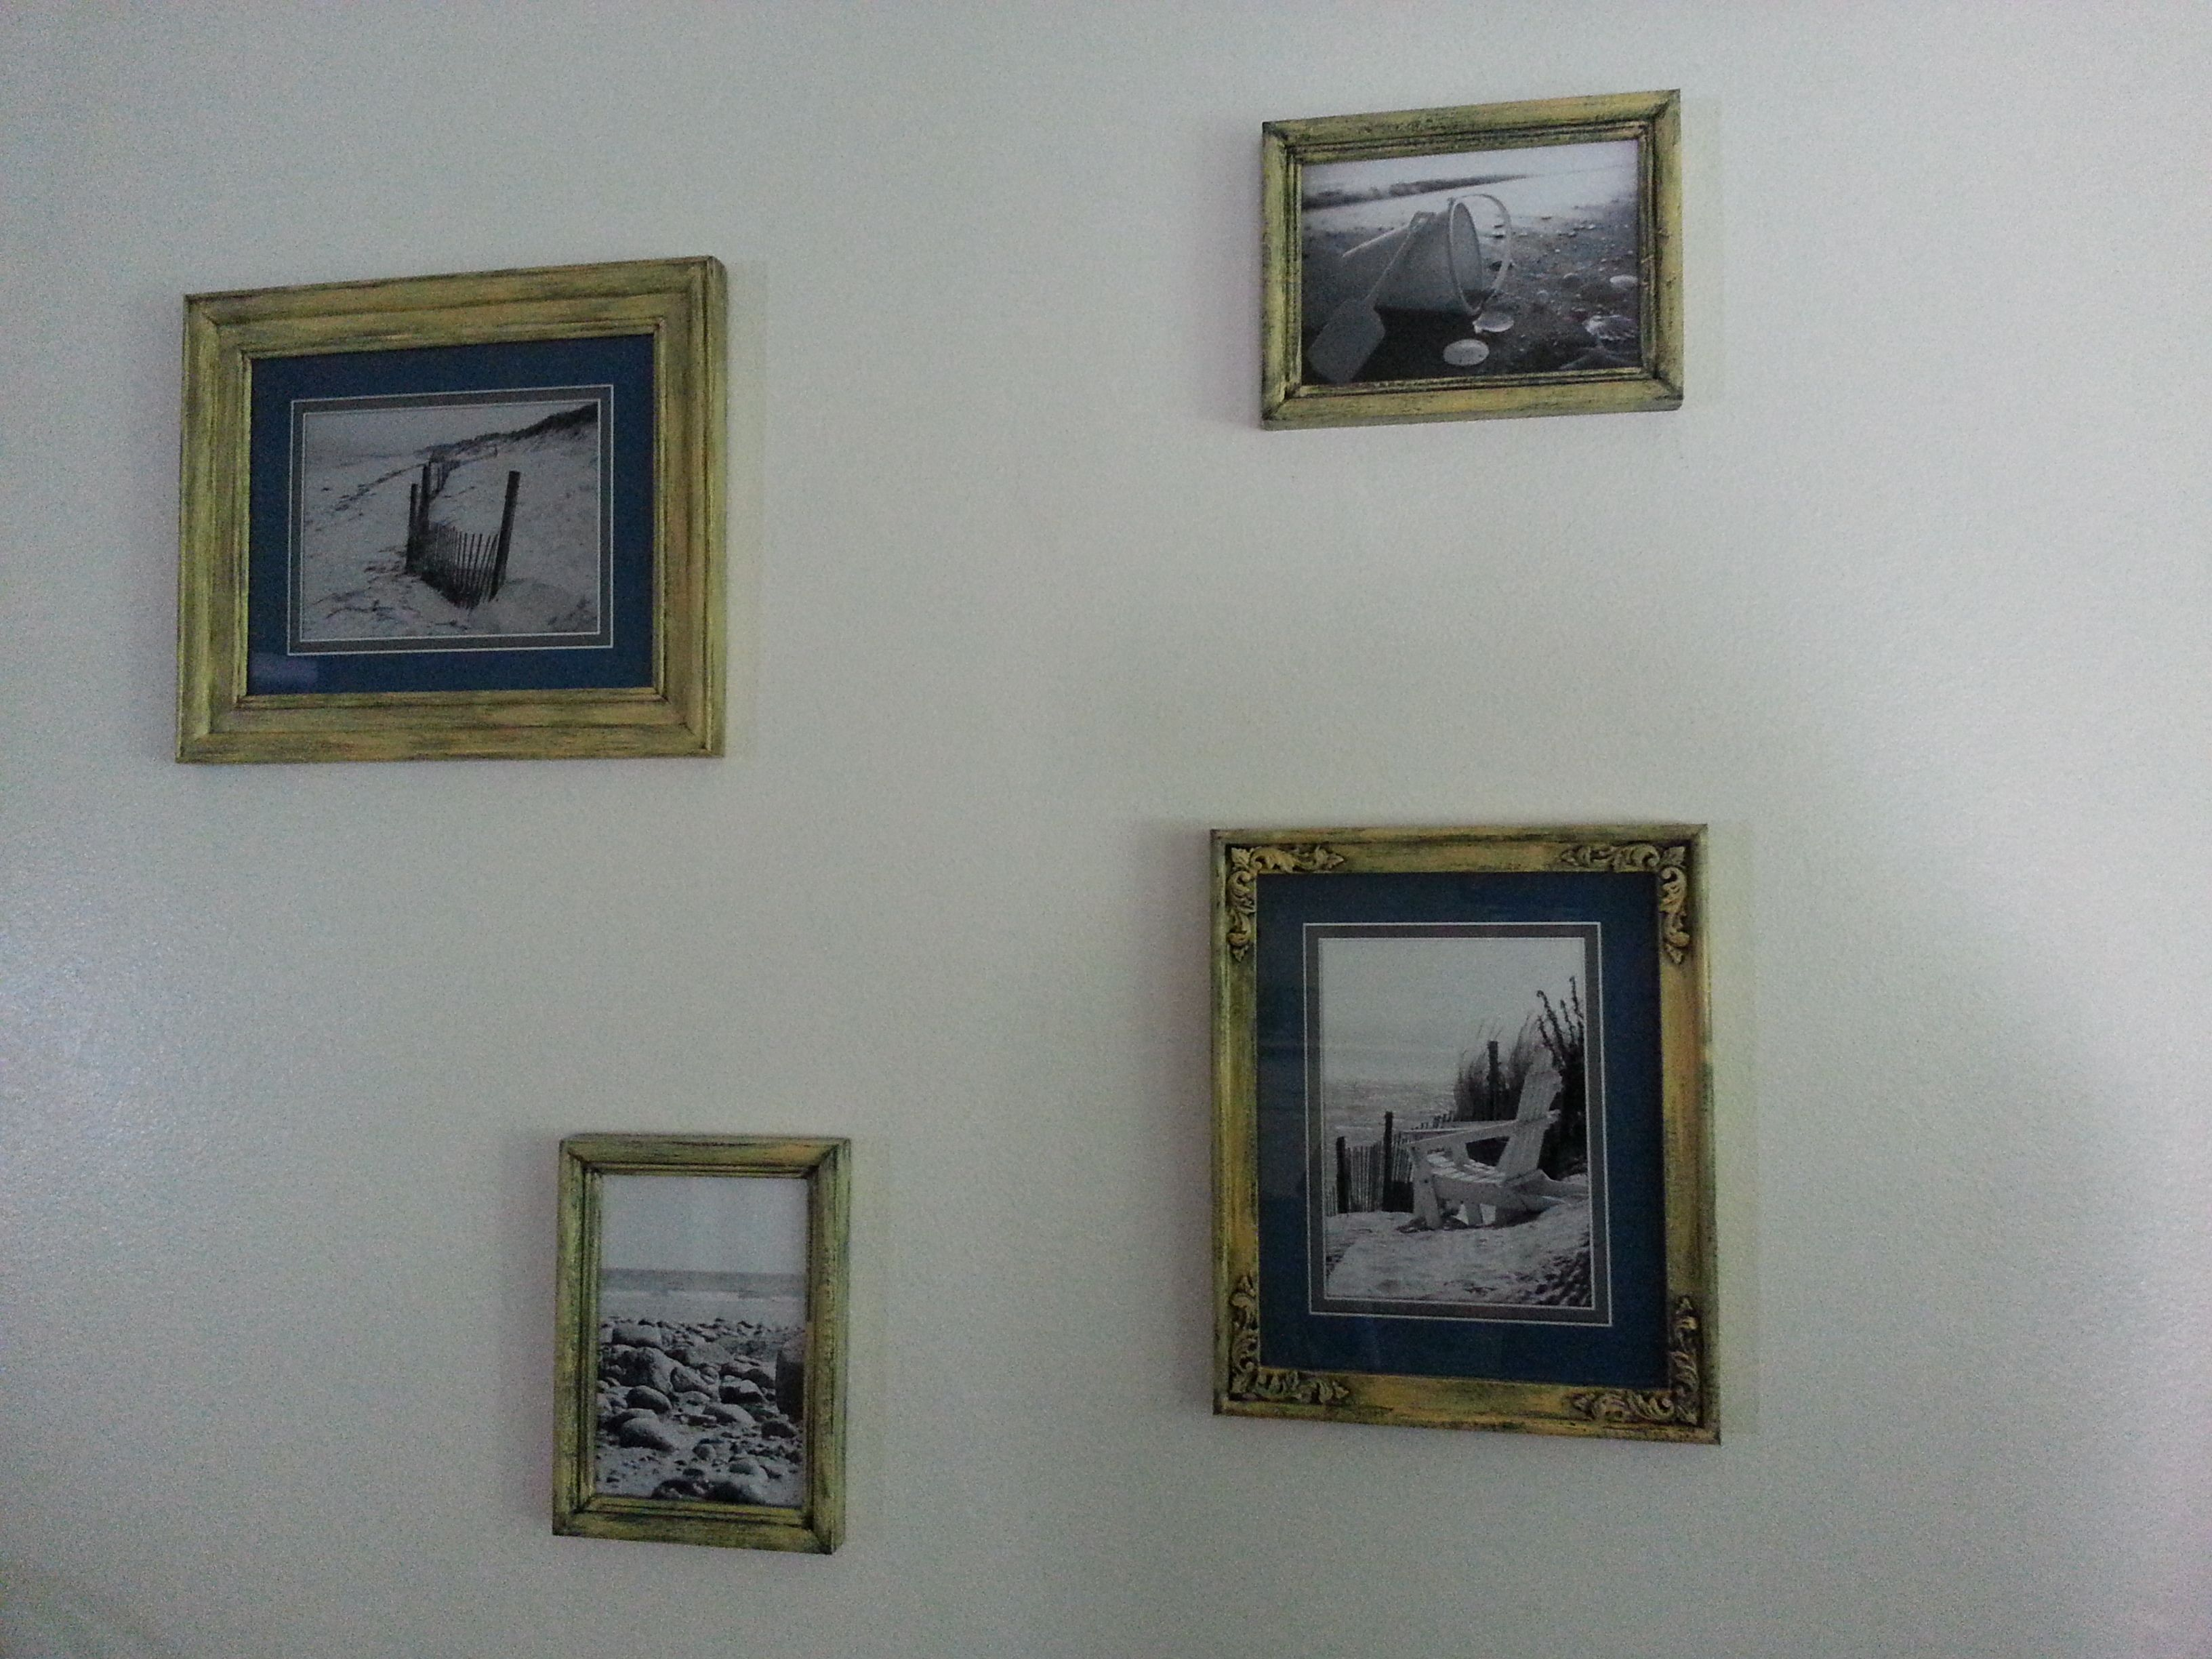 Cheap wall artinted picture frames i found packed in a box